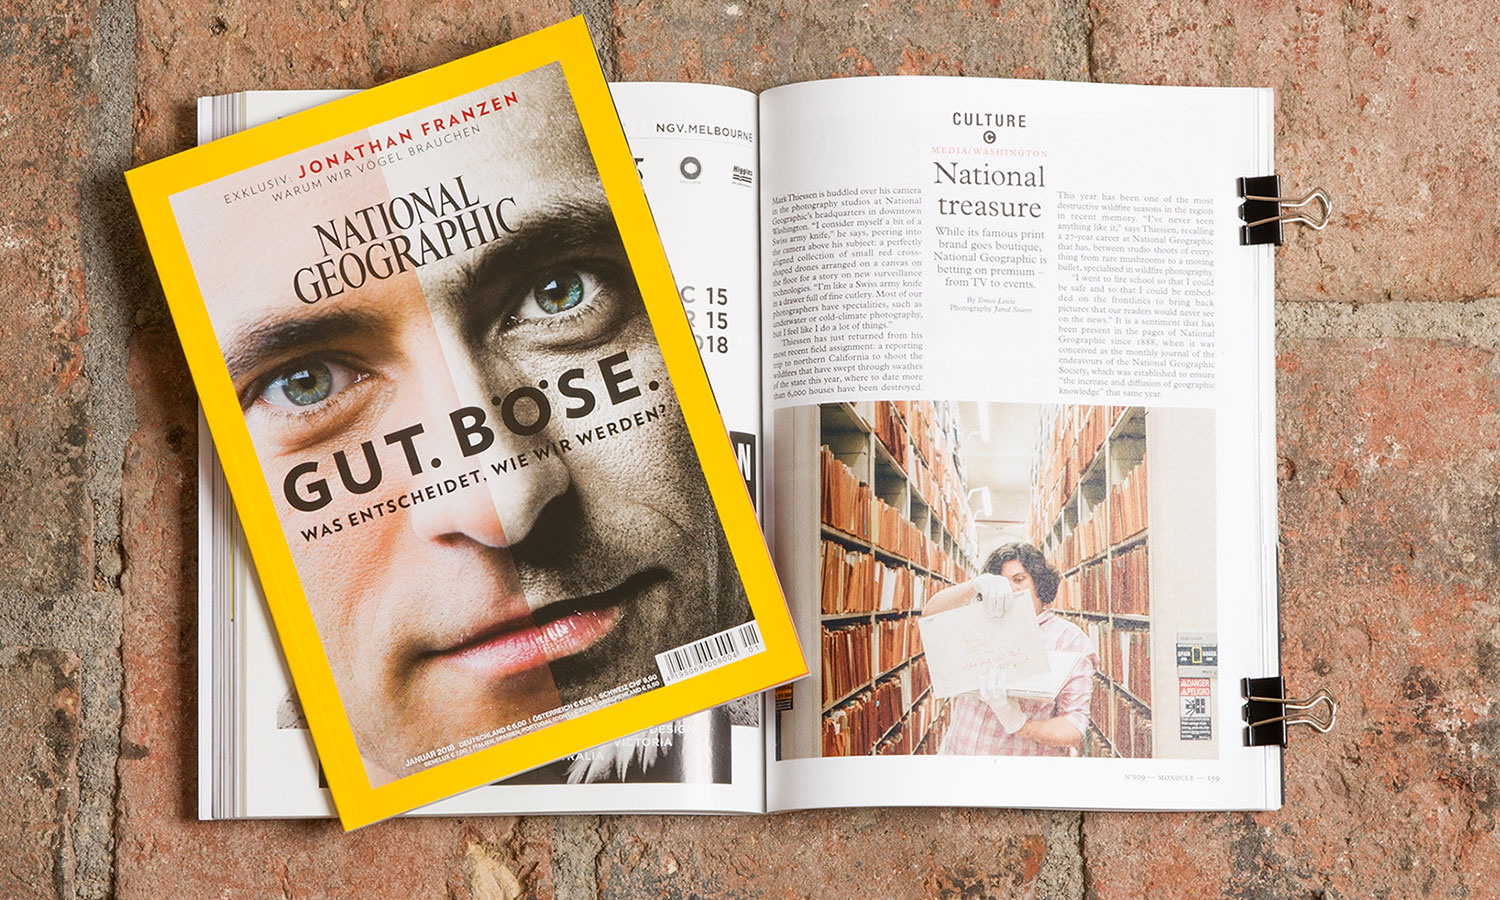 Magazintitel National Geographic, Januar 2018 und Bericht über National Geographic im Magazin Monocle No 109.